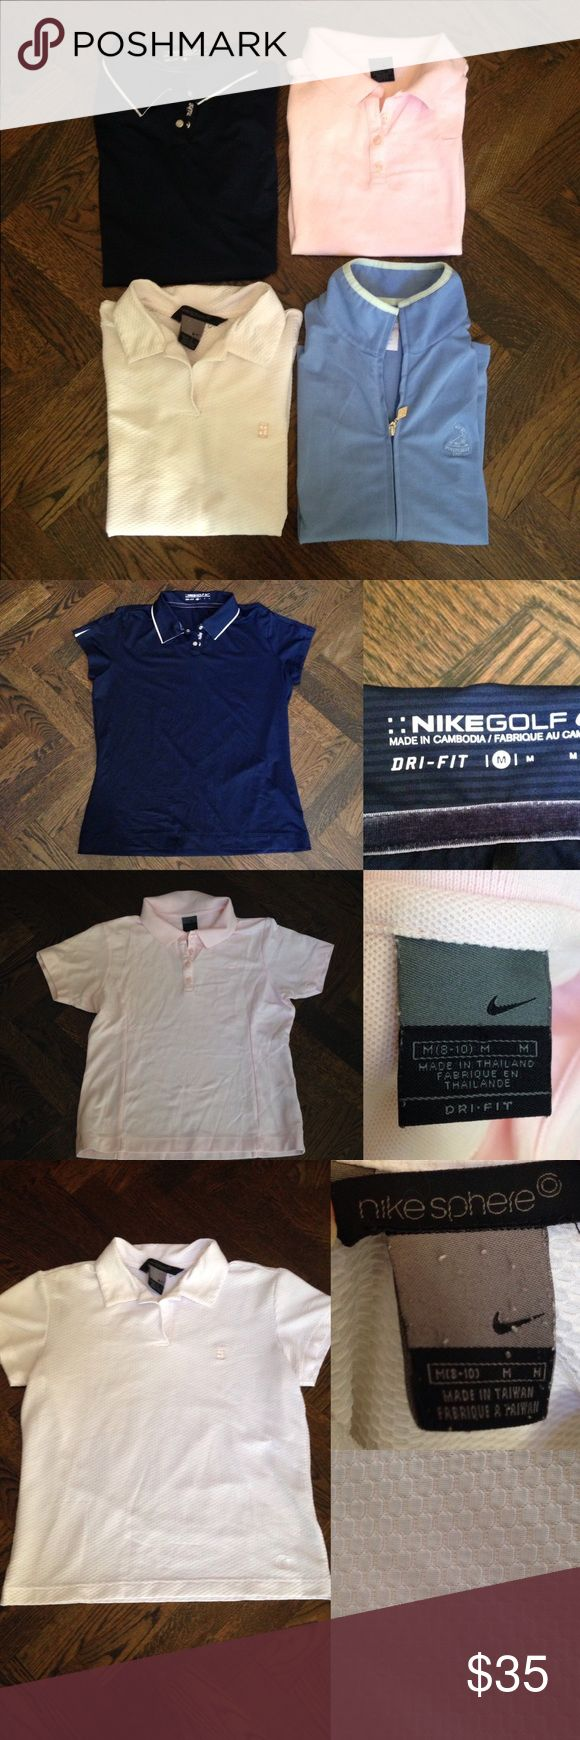 Women's golf shirts and vest Bundle!! All items in great condition! All size mediums.    Includes: Nike golf shirt (navy blue with white trim). Nike golf polo (baby pink). Nike Sphere polo (white texturized). Vest from Pinehurst. Nike Tops